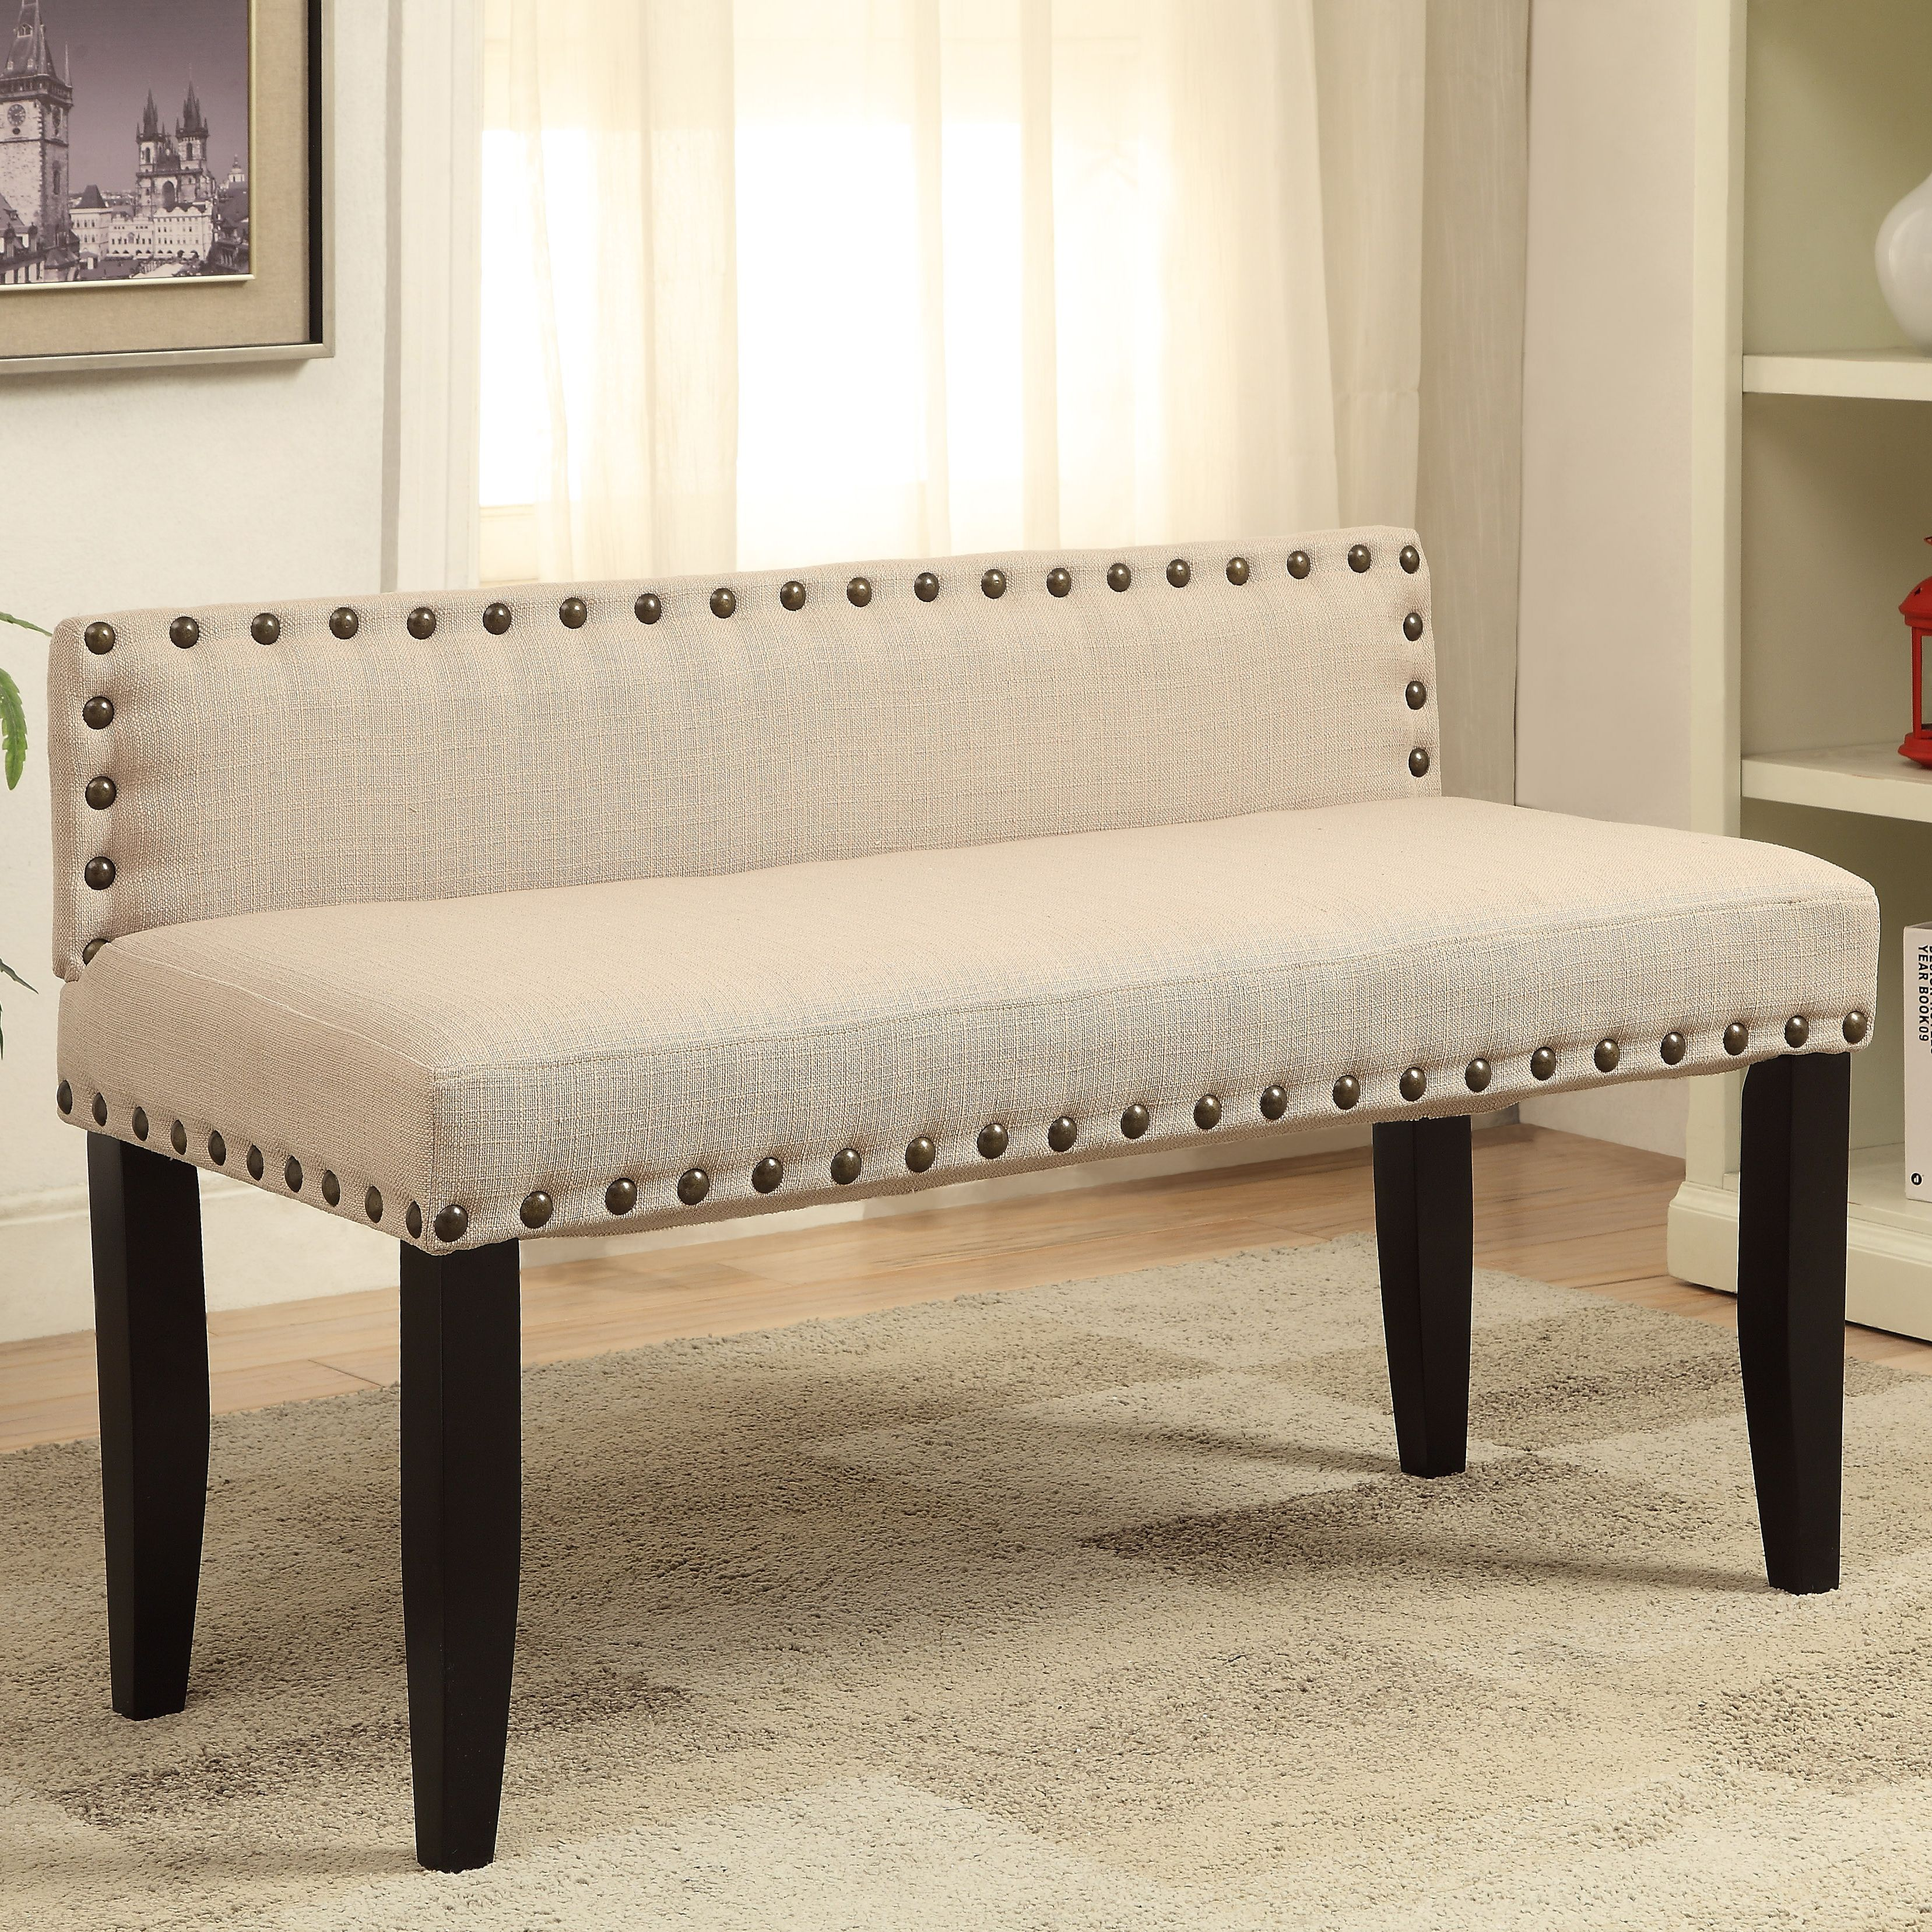 Dining room table with upholstered bench  This stylish bench is constructed from padded flax fabric for an